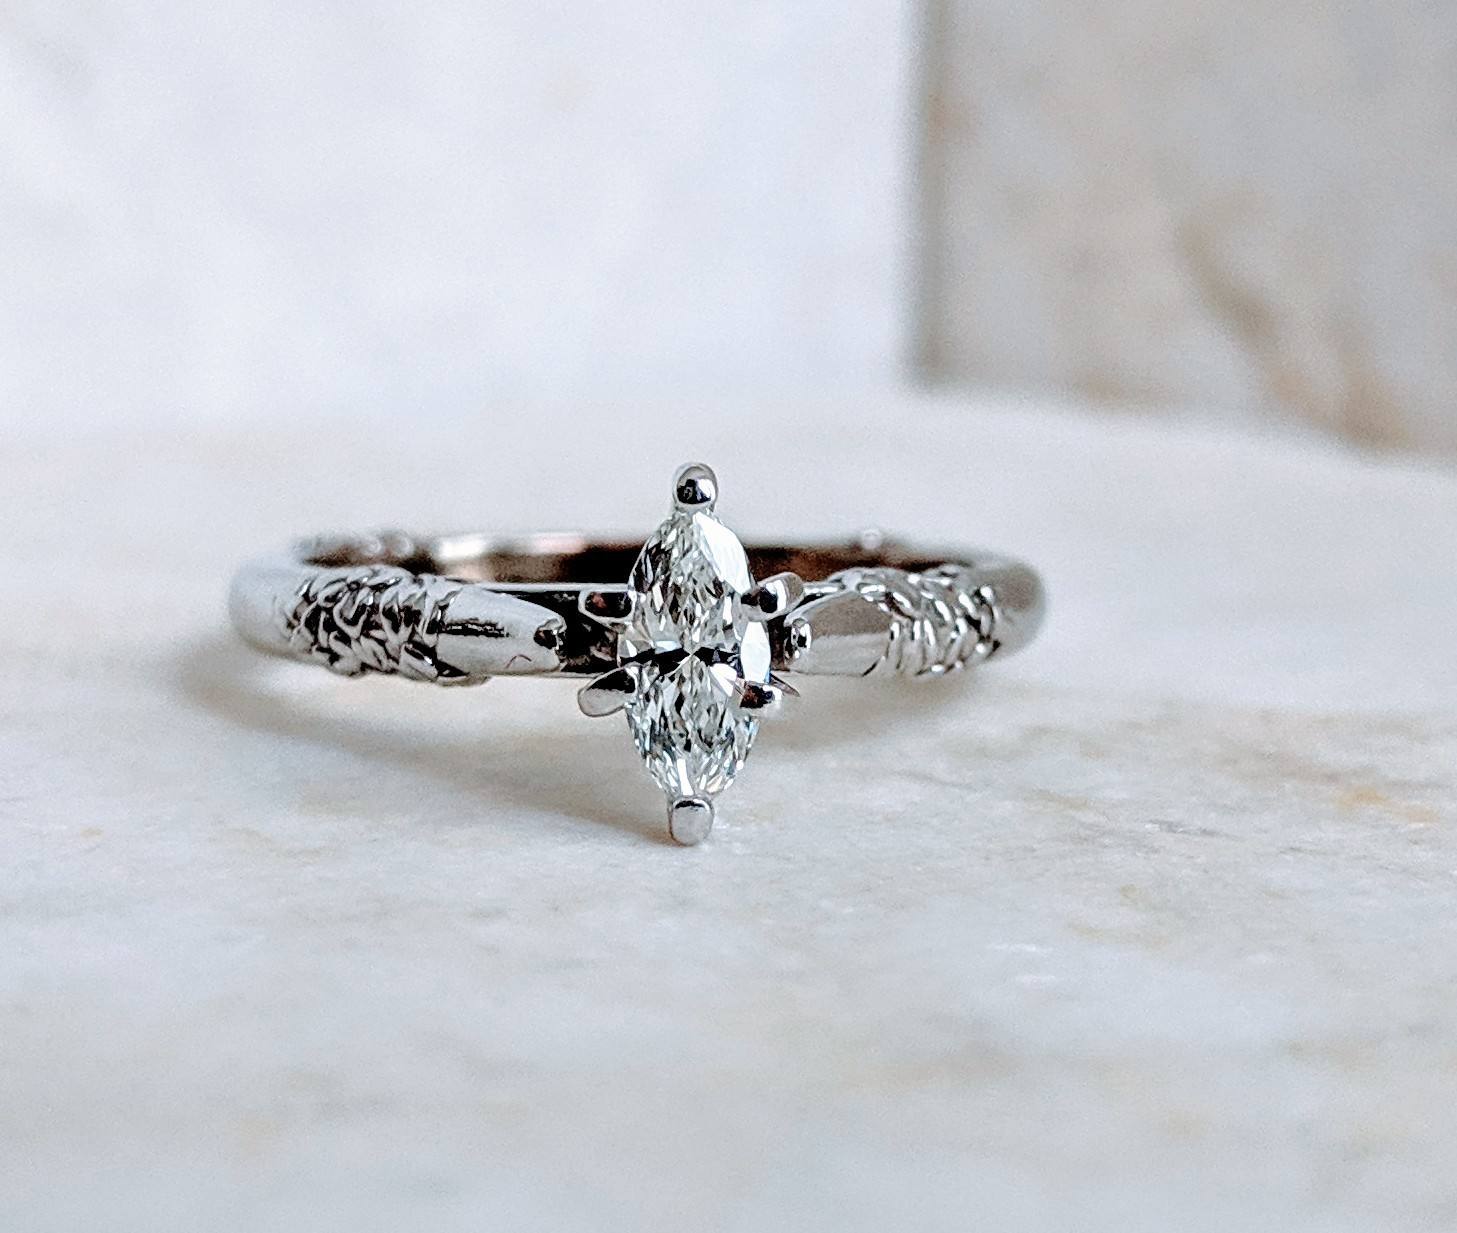 0.28 CT VS2, H Marquise Diamond in White Gold Solitaire